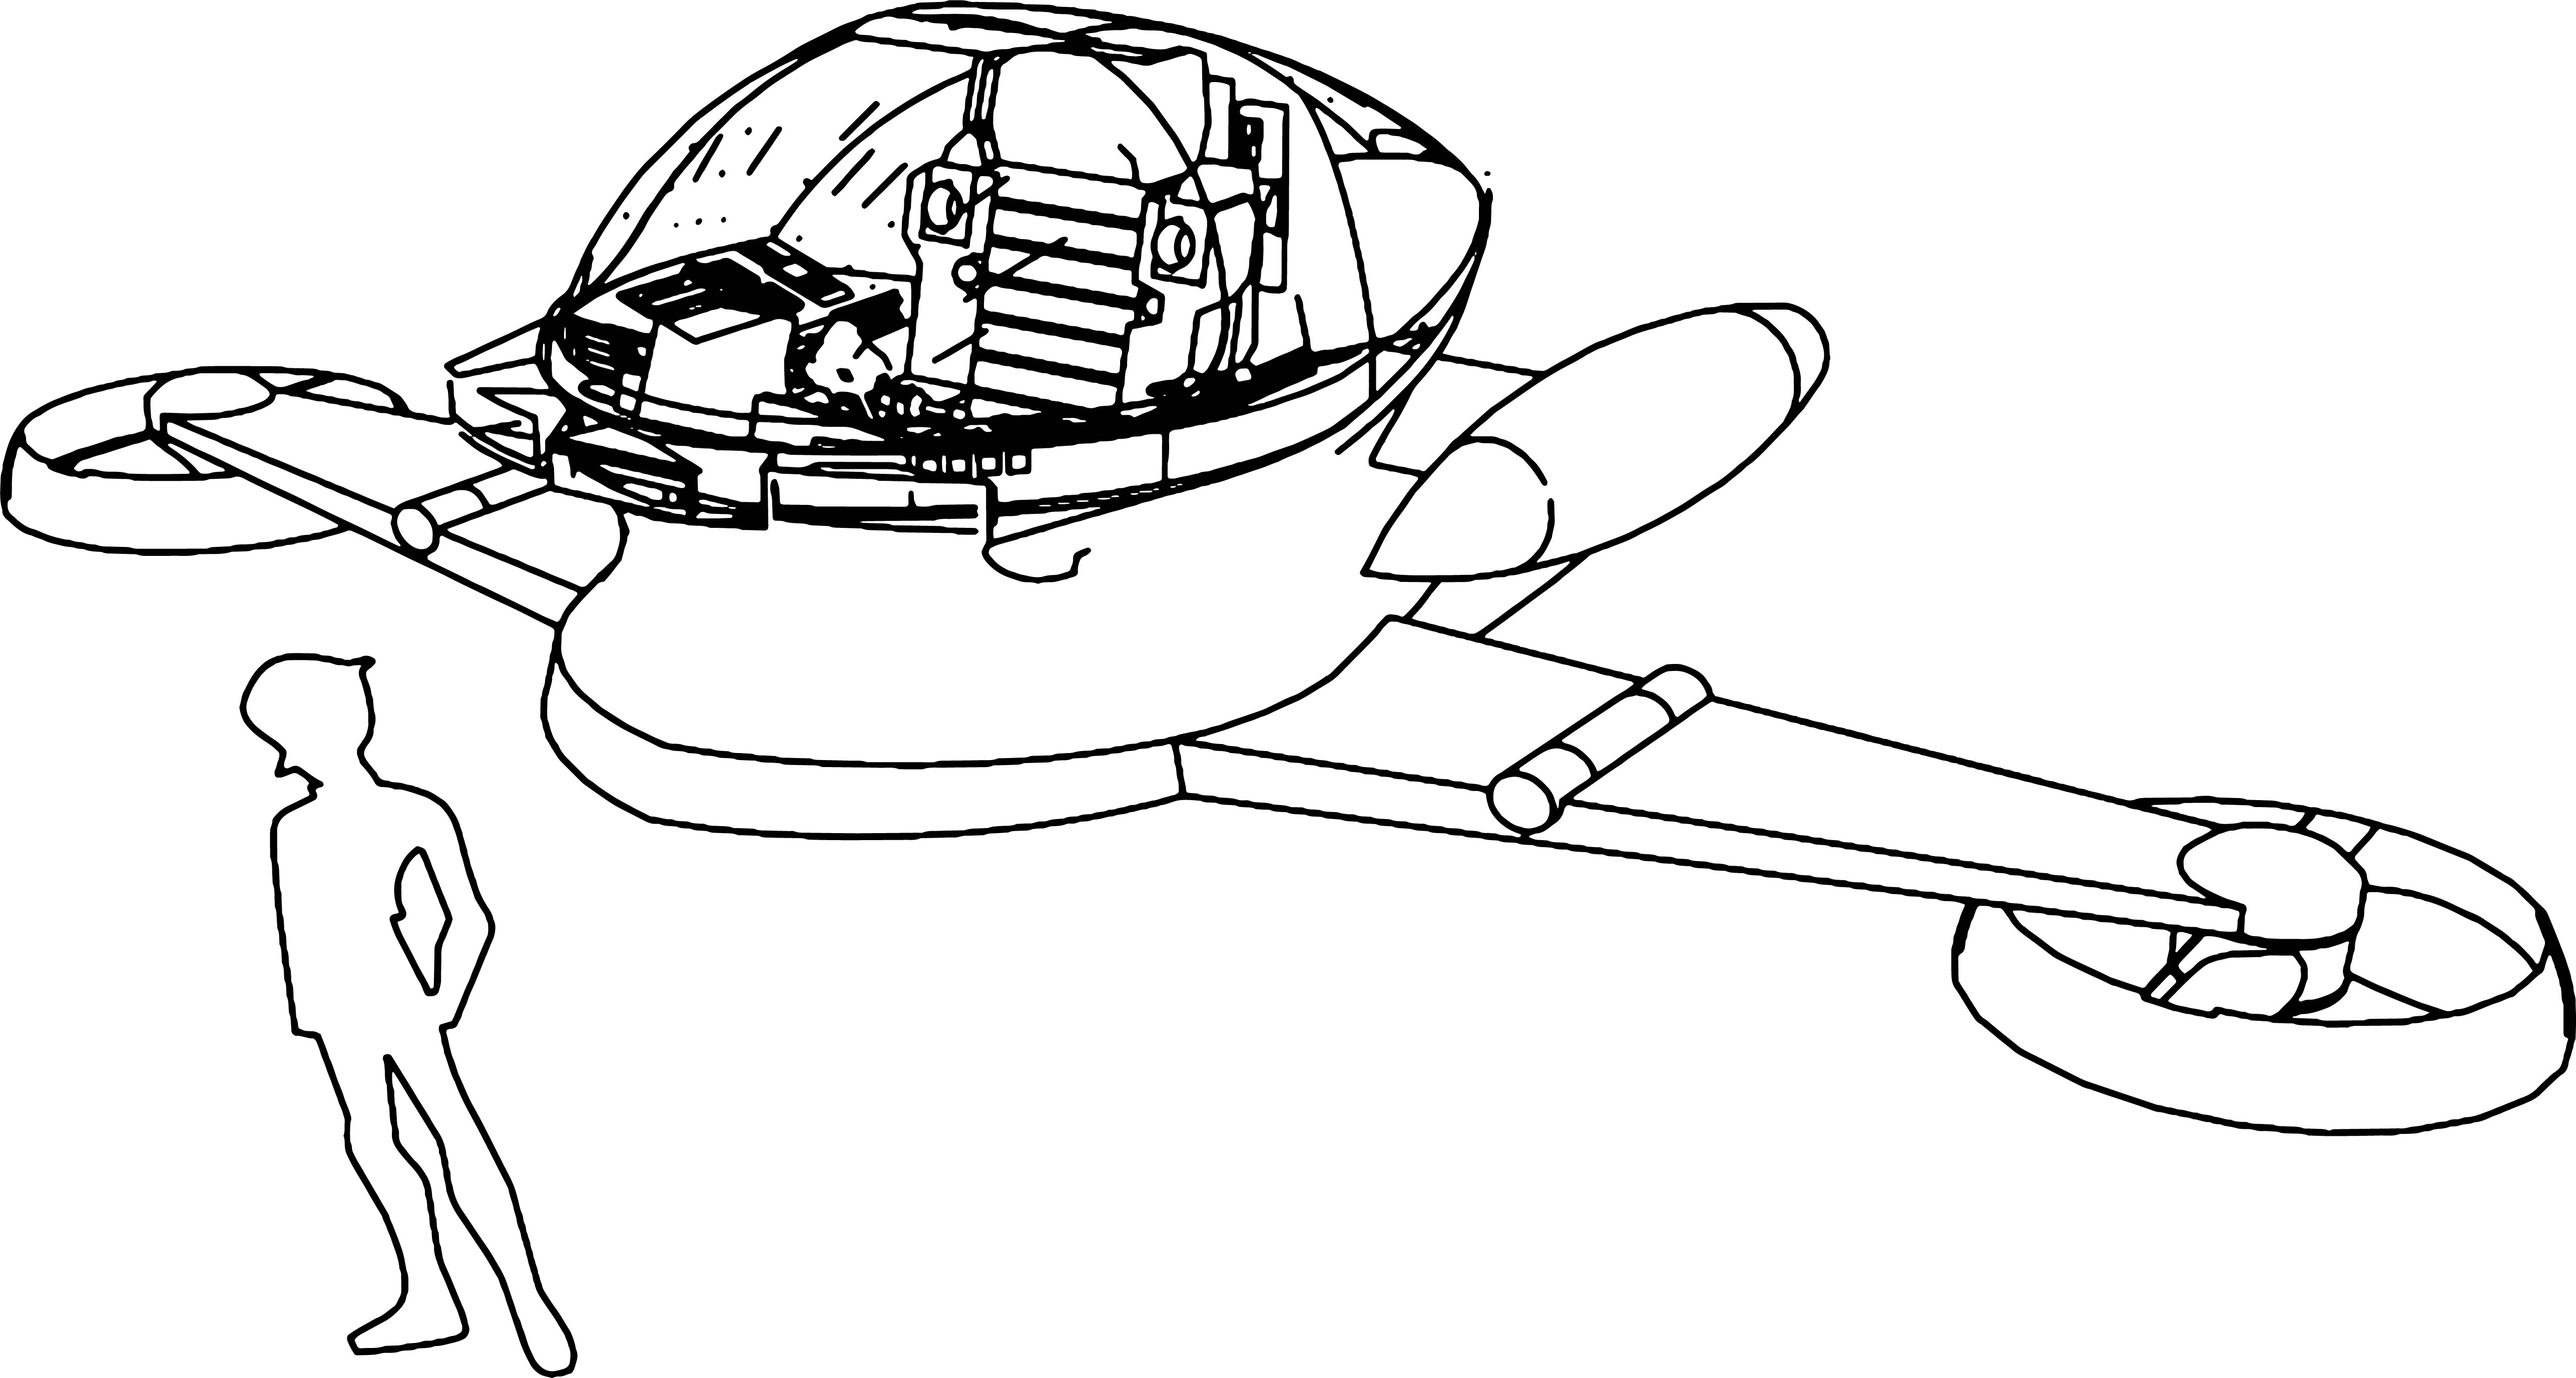 Hover Pilder Coloring Page